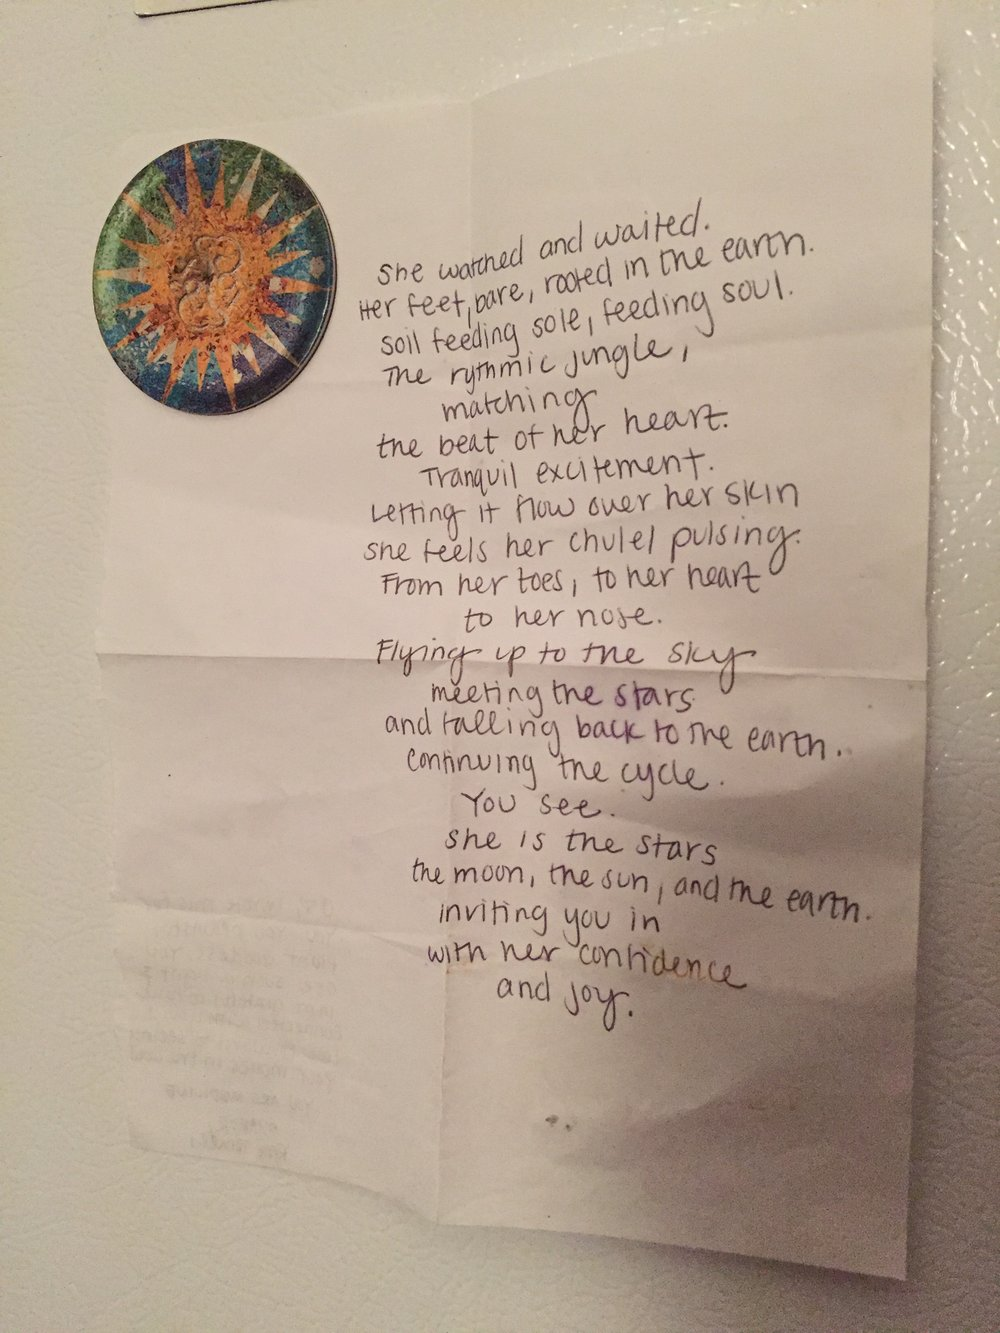 A beautiful poem written for me by an even more beautiful friend!